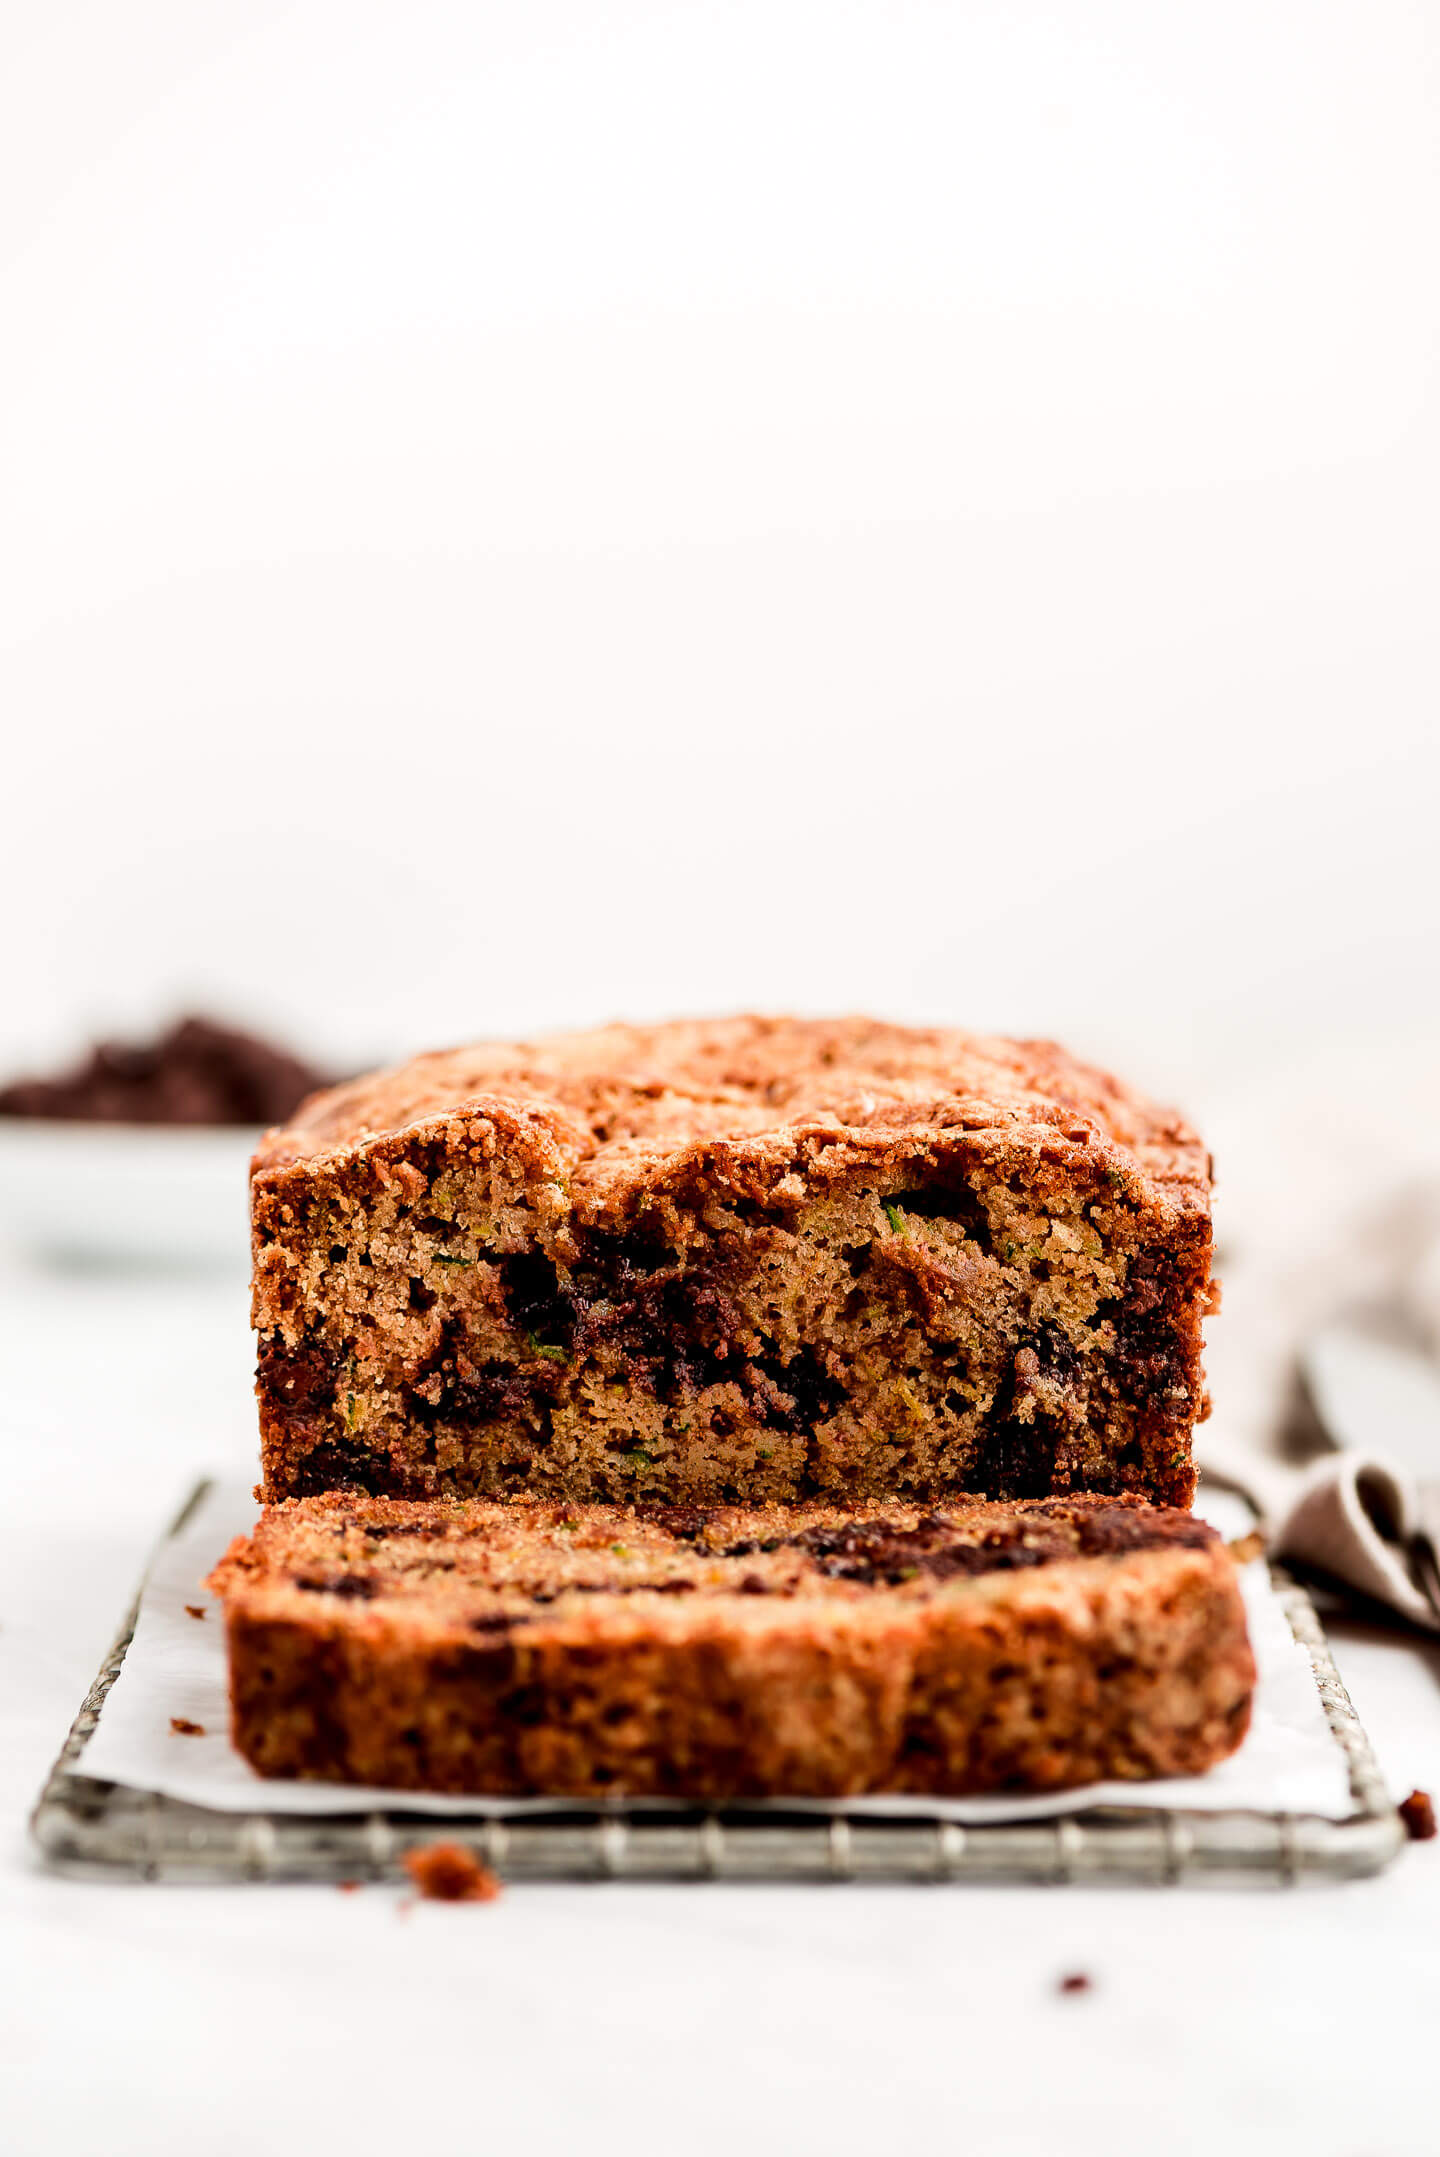 Chocolate Chip Zucchini Bread on a cooling rack with a slice cut off and laying in front.